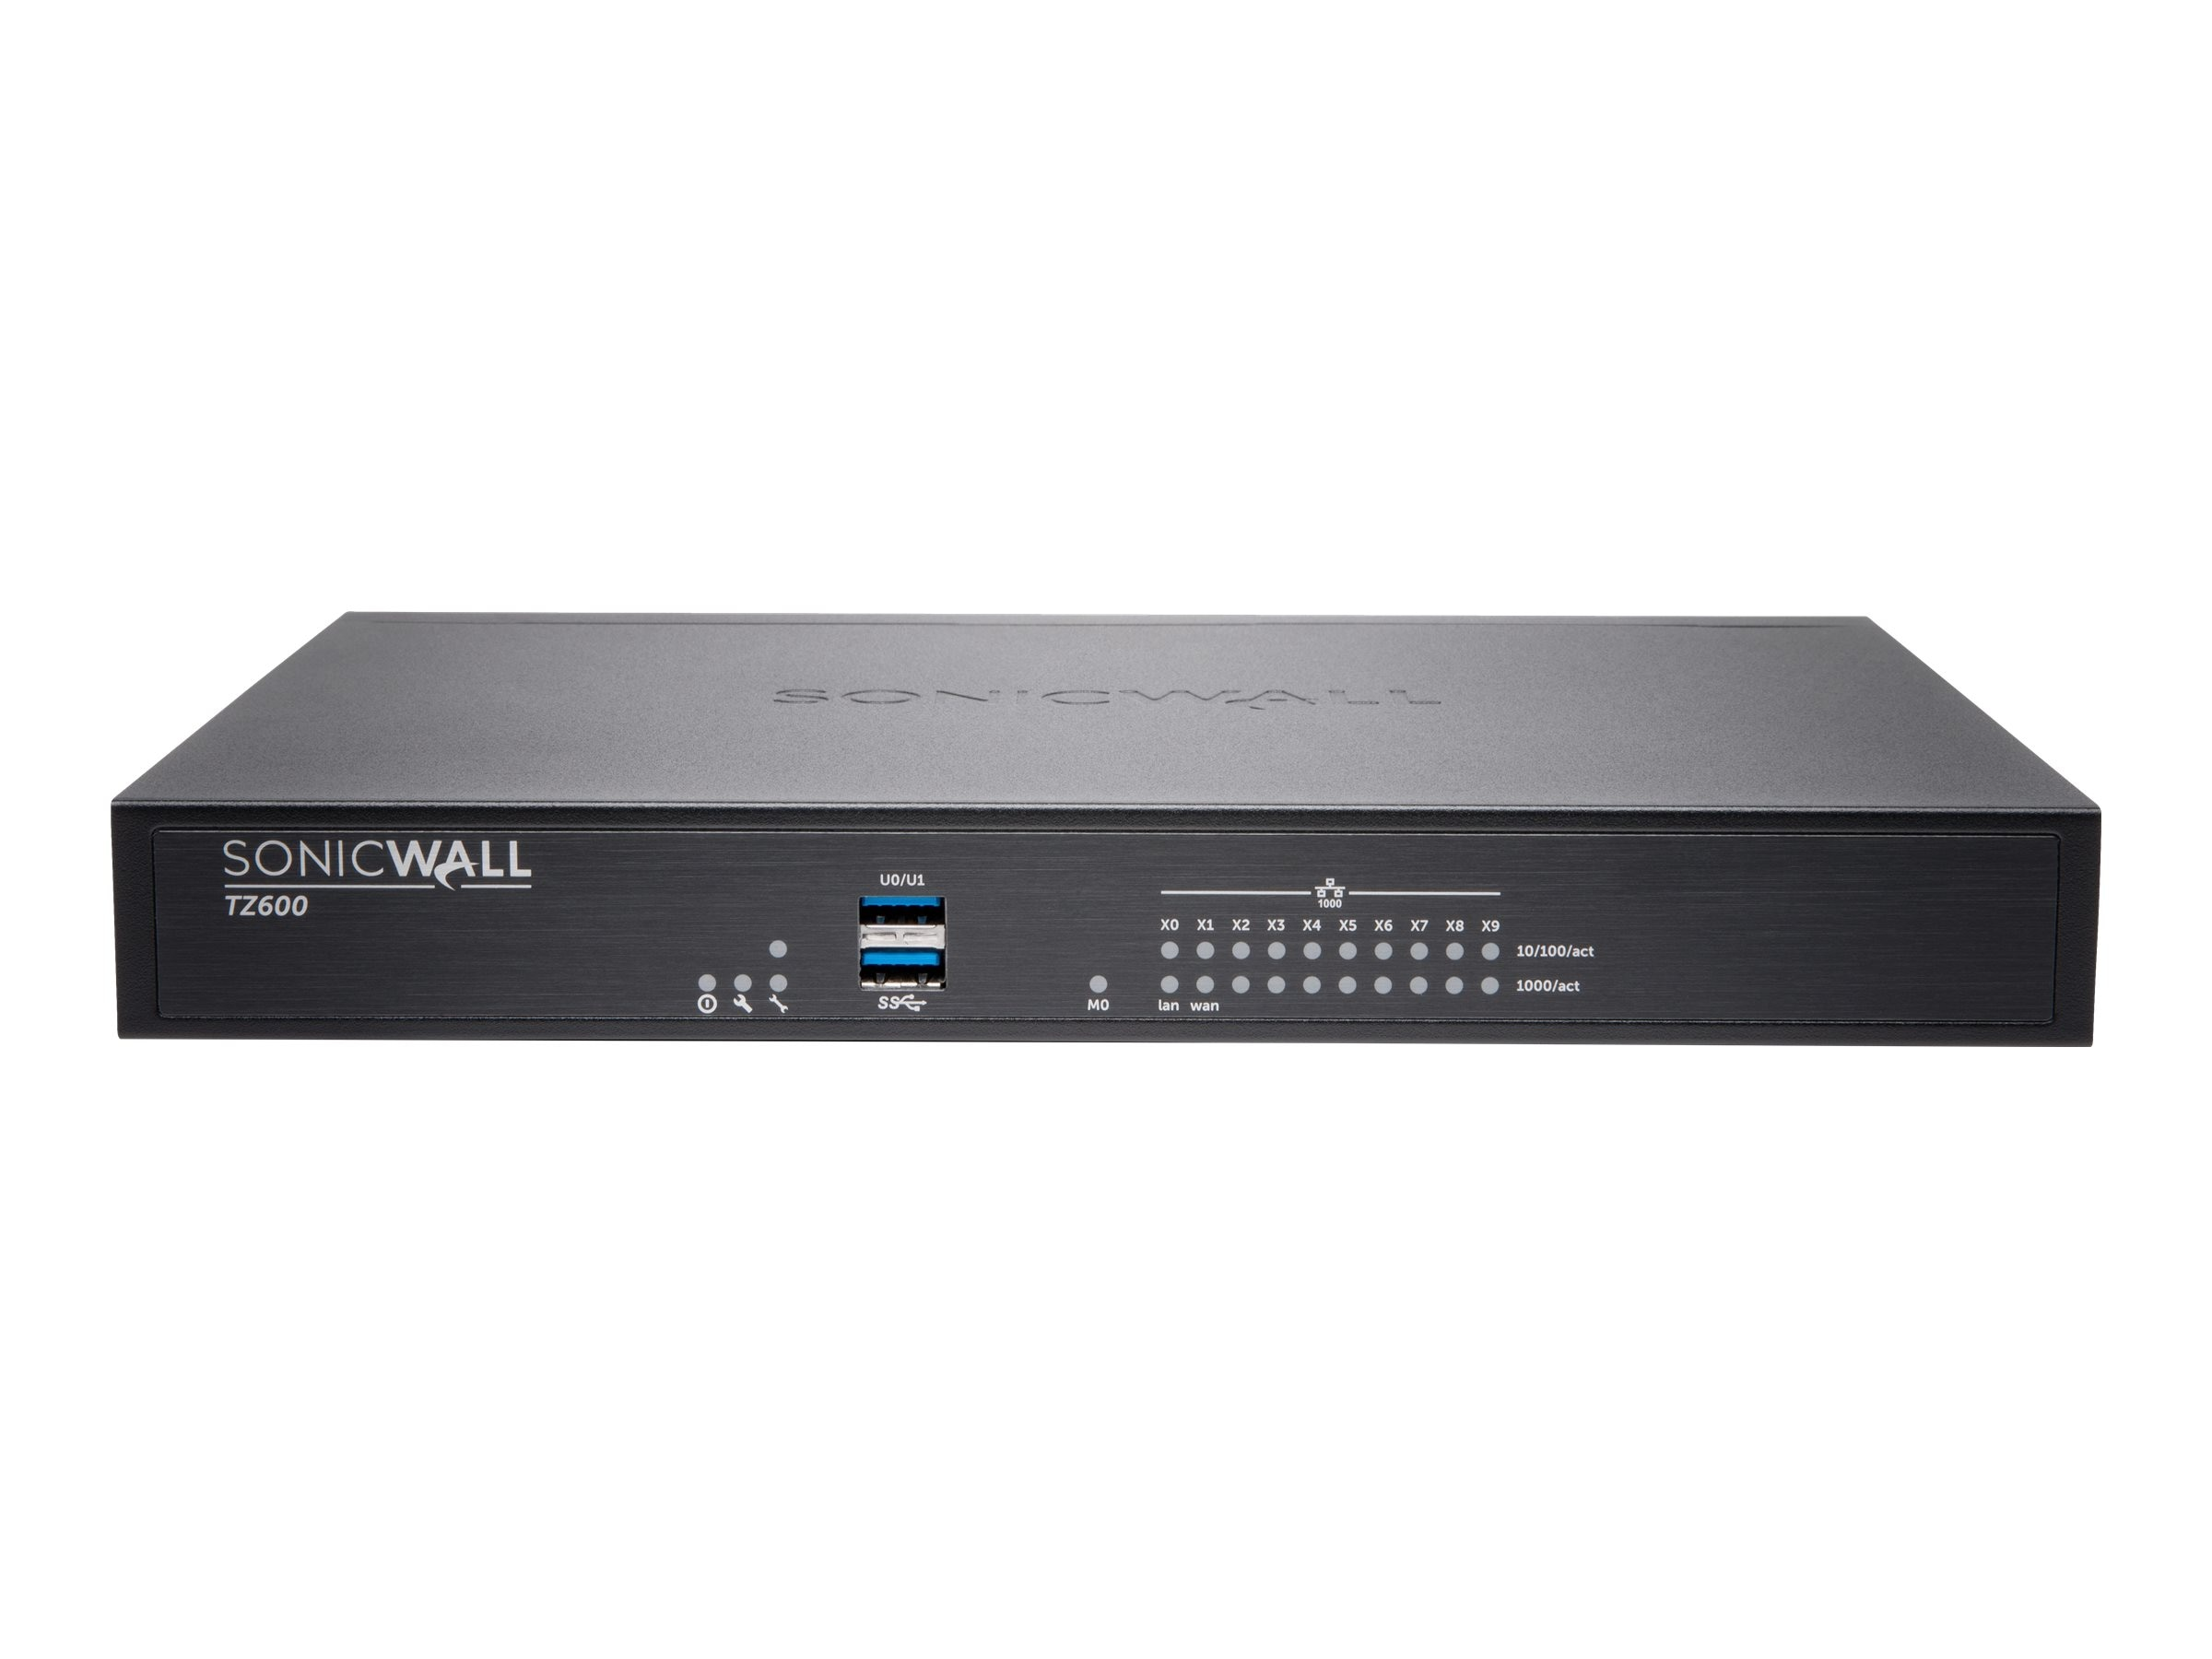 SonicWALL 01-SSC-1736 Image 2